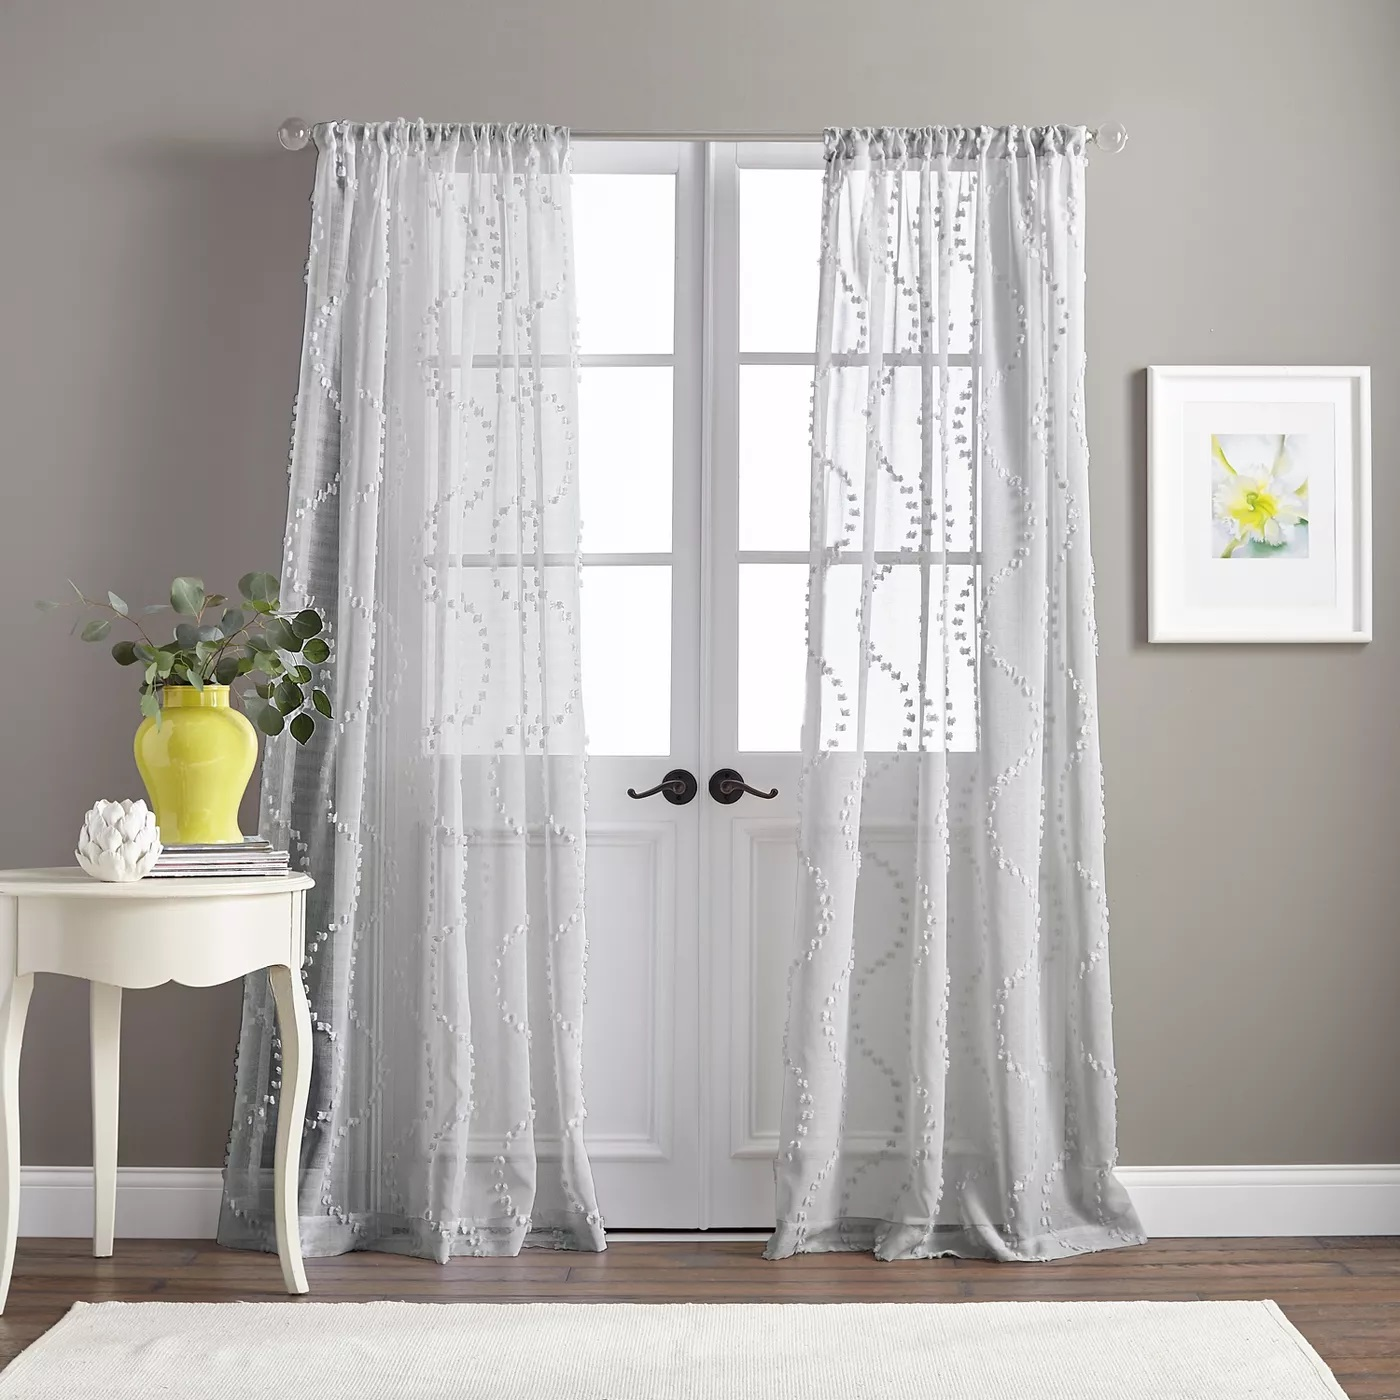 dixon wave poletop 50 x 95 inches curtain panel w gentle light filtering white walmart com